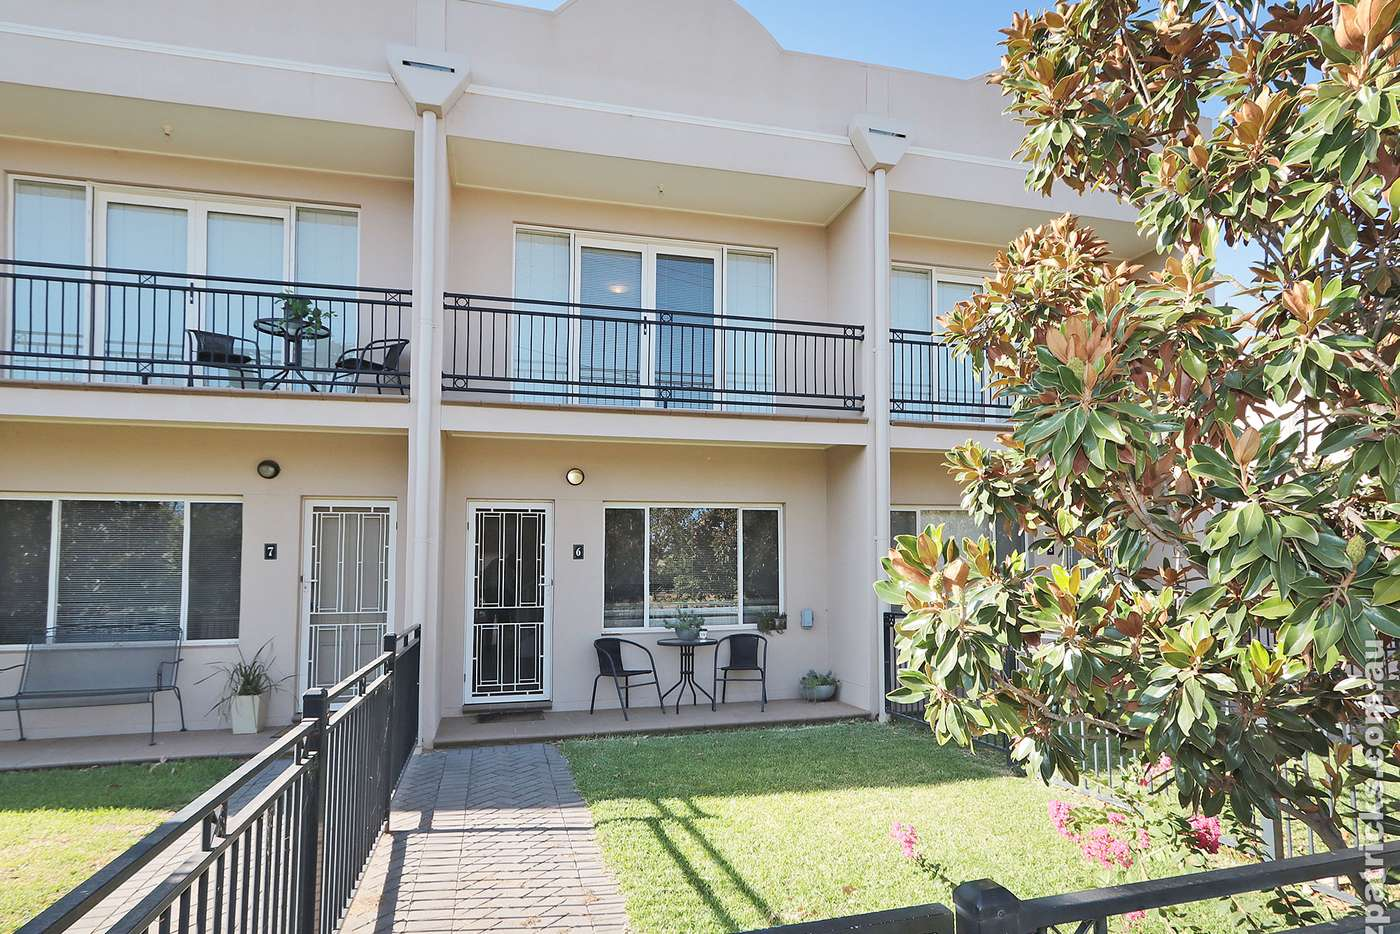 Main view of Homely unit listing, 6/20 Travers Street, Wagga Wagga NSW 2650